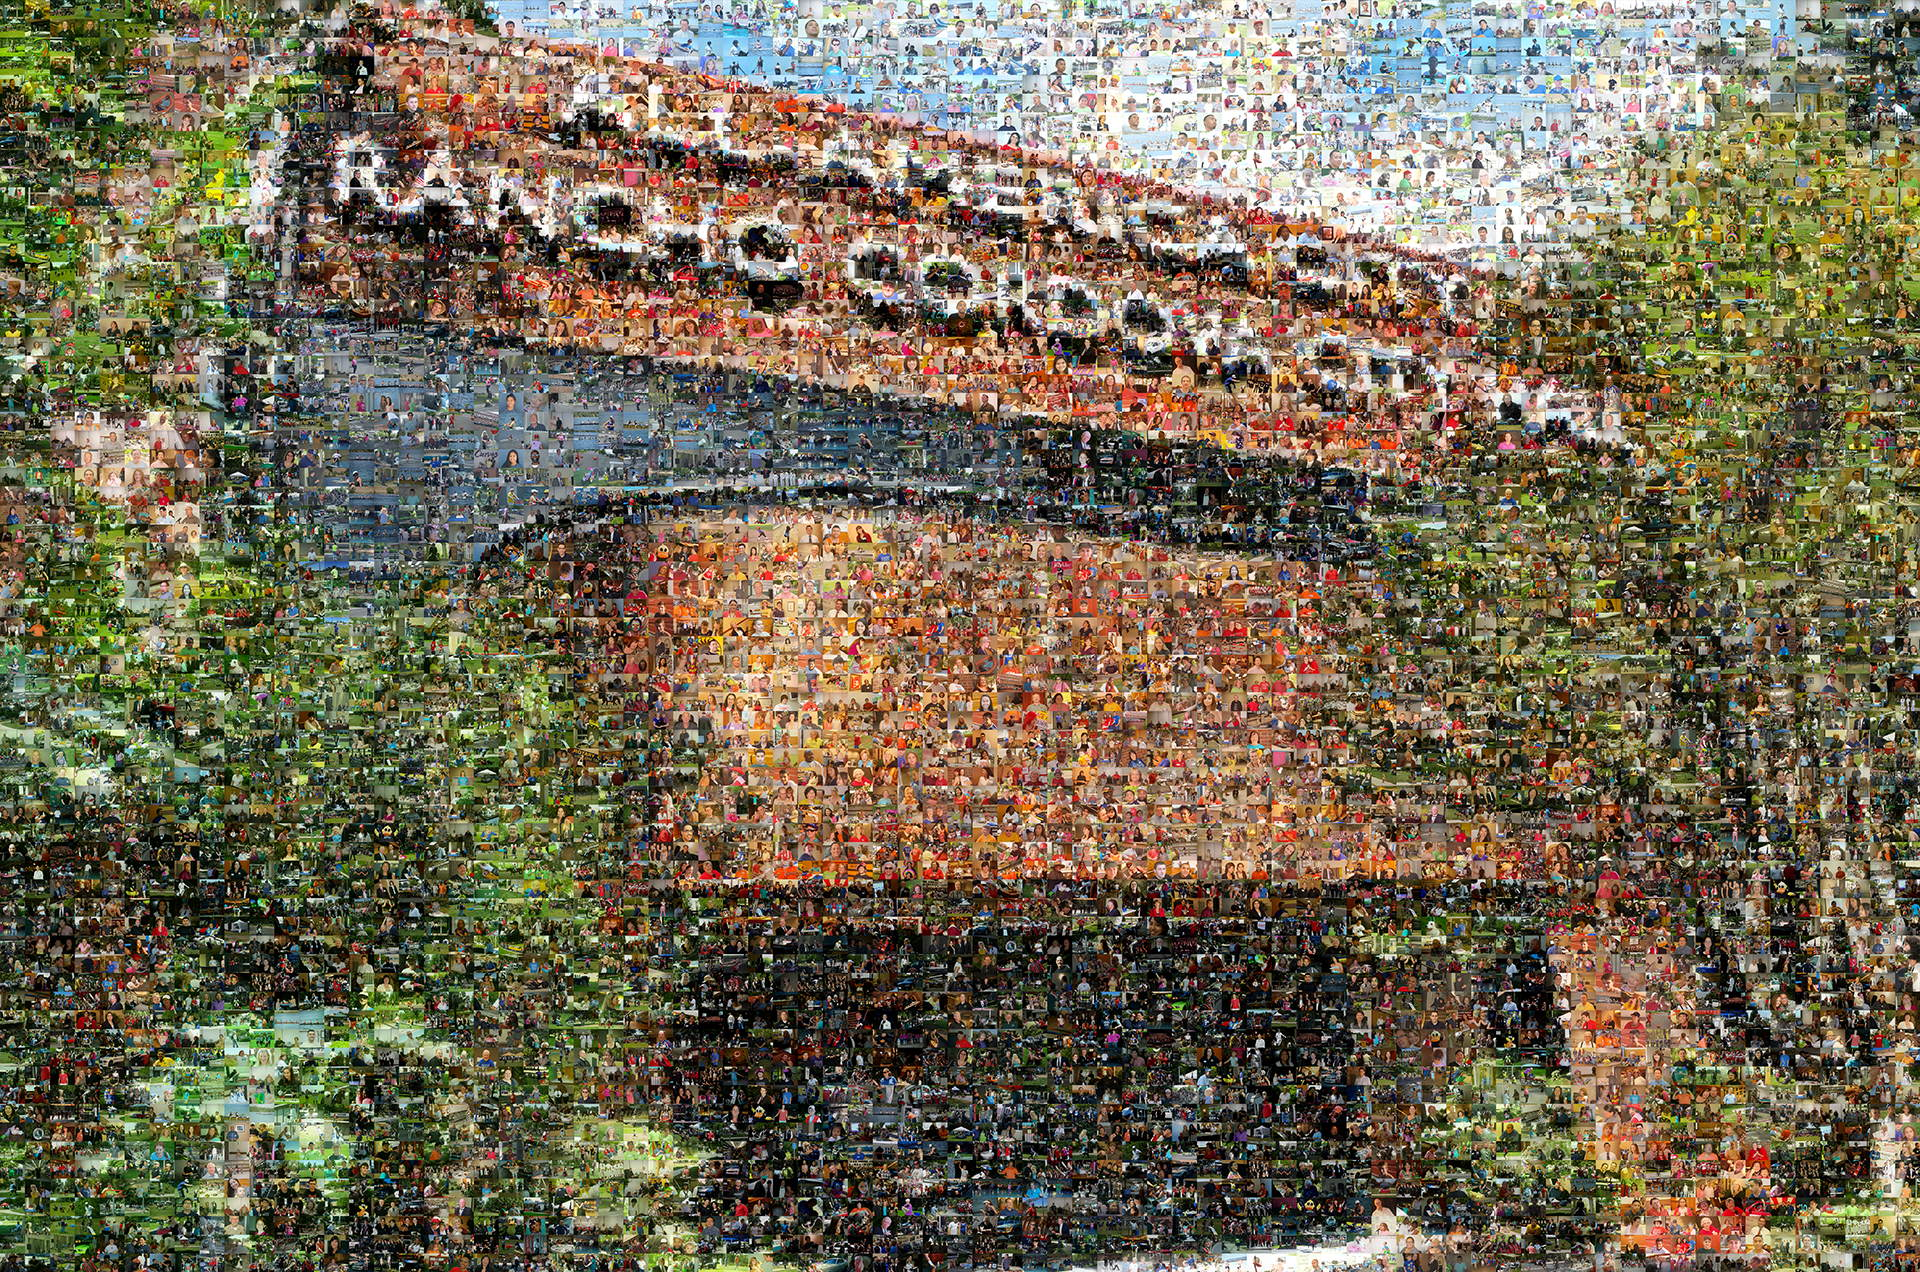 photo mosaic created using over 5180 event photos